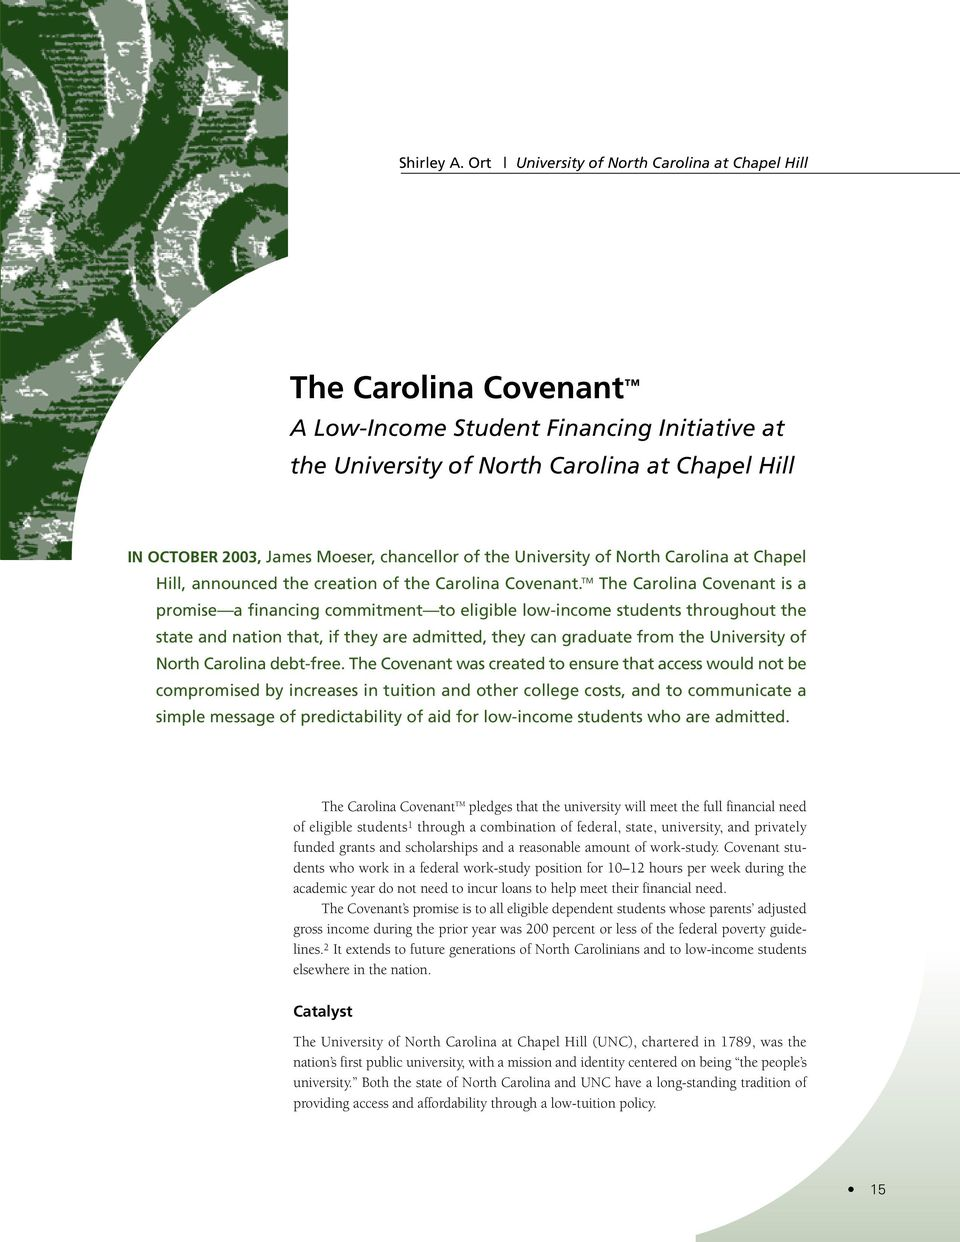 chancellor of the University of North Carolina at Chapel Hill, announced the creation of the Carolina Covenant.